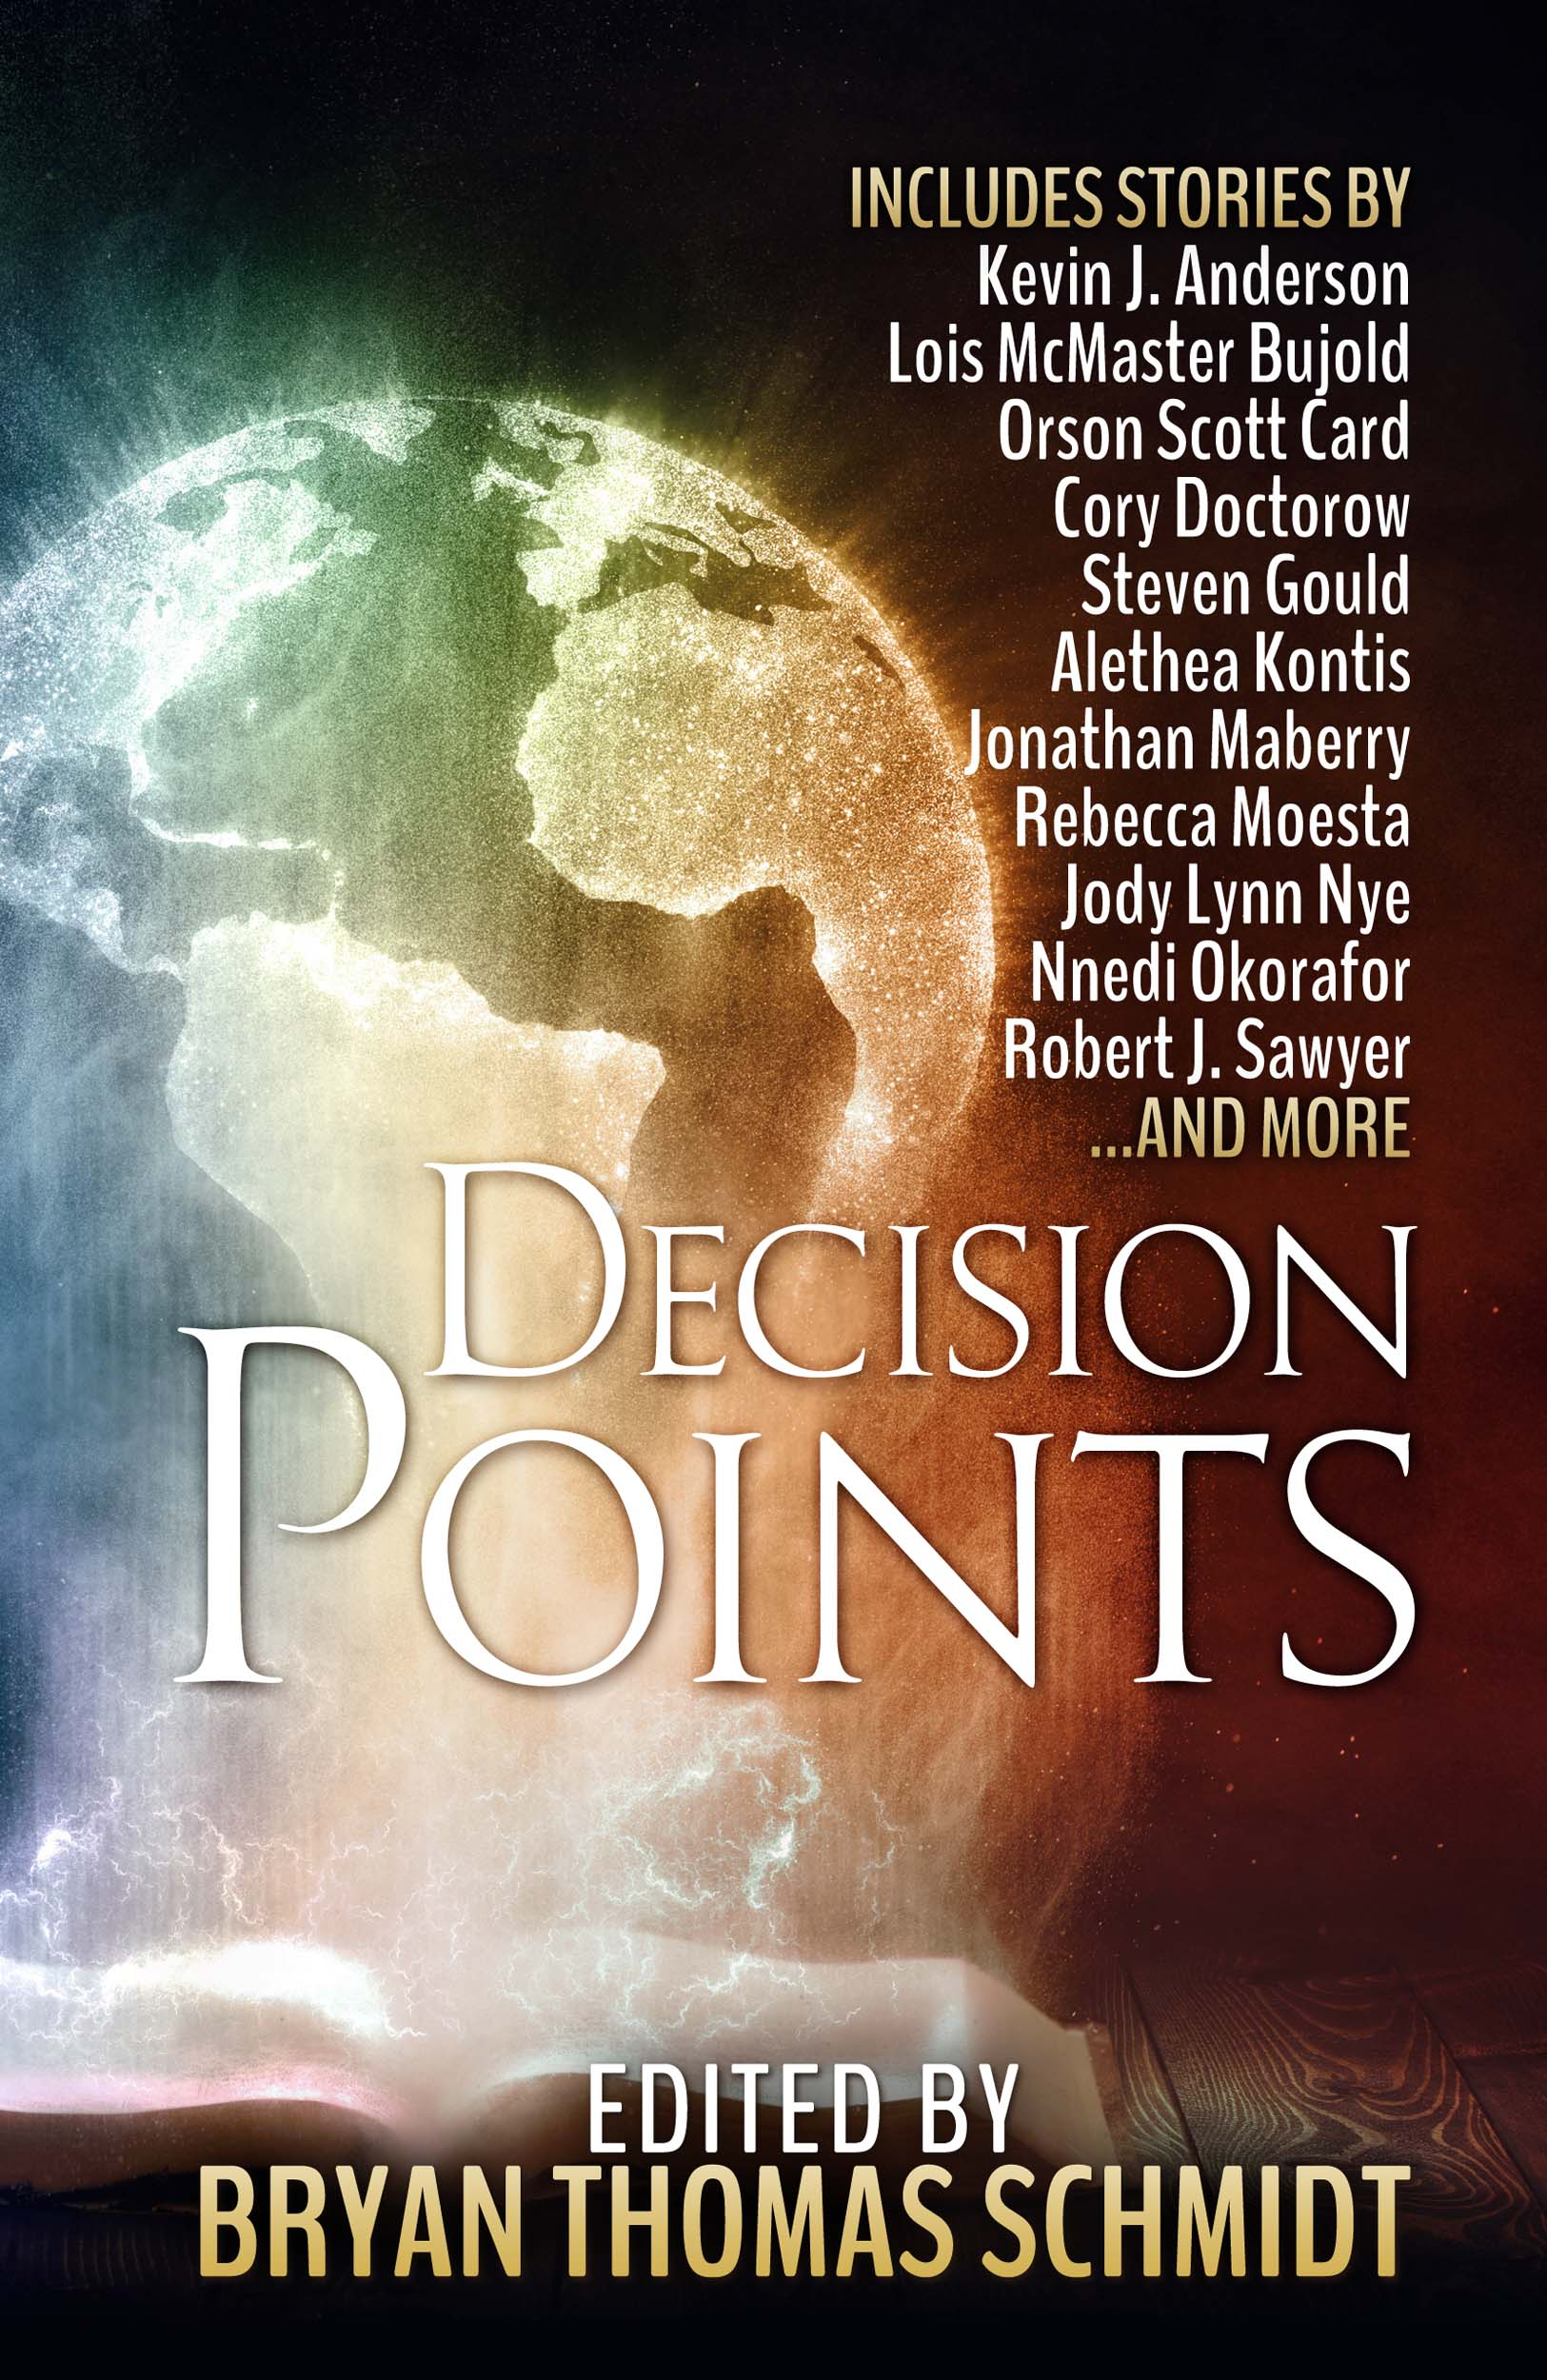 Decision Points edited by Bryan Thomas Schmidt